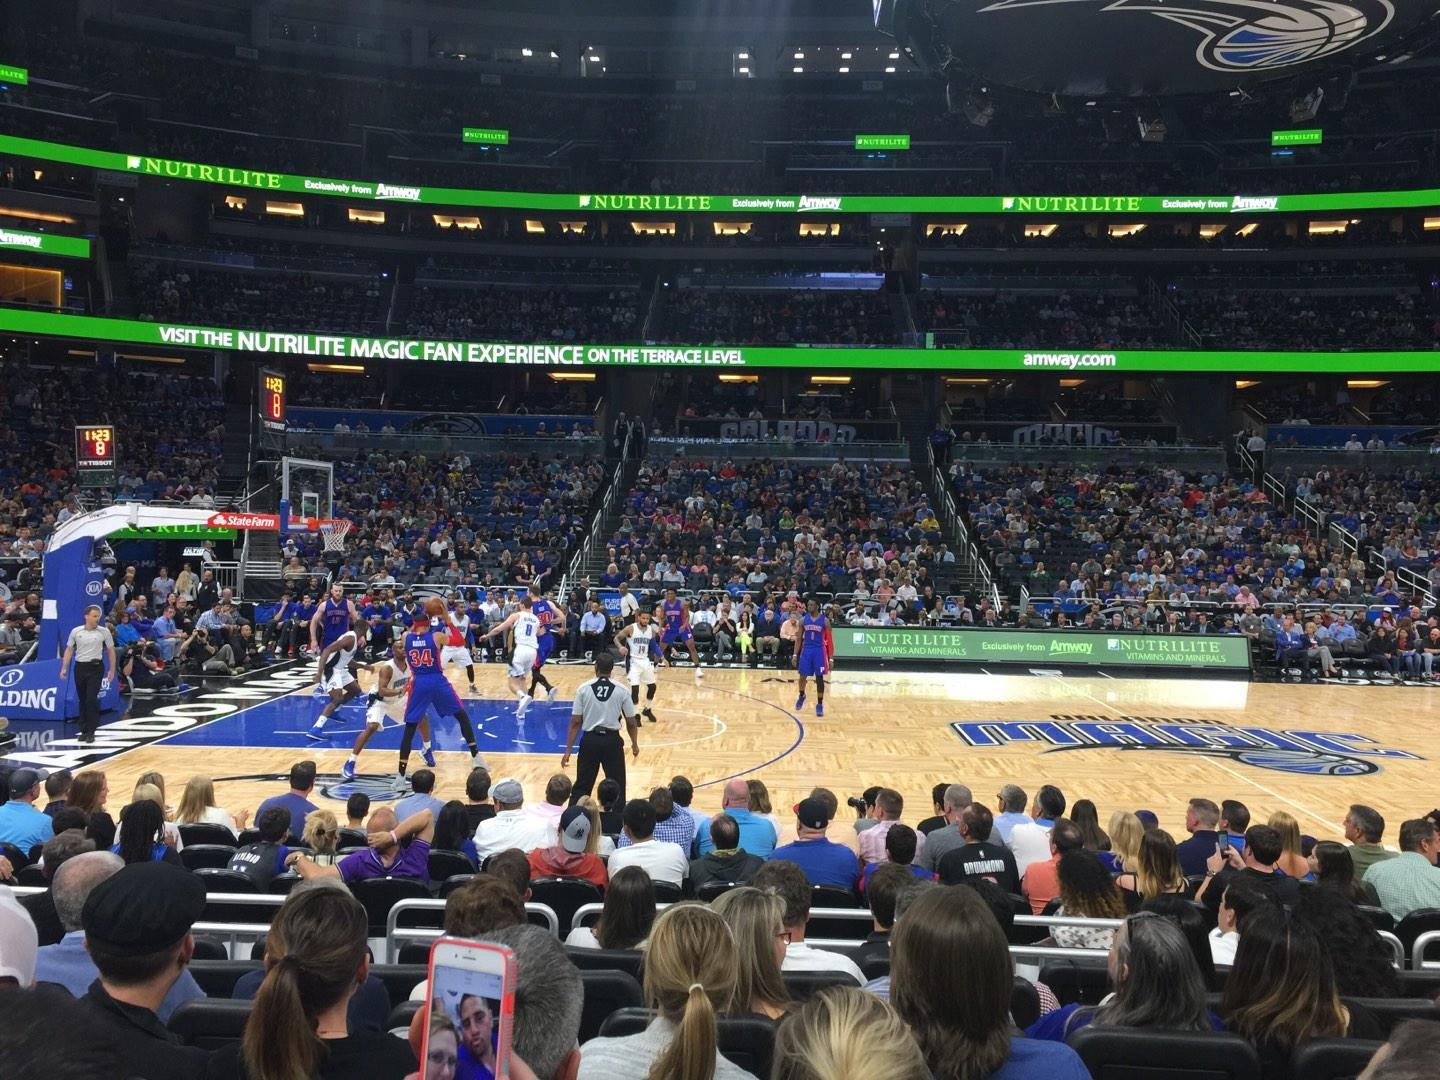 Amway Center Section 115 Row 7 Seat 9